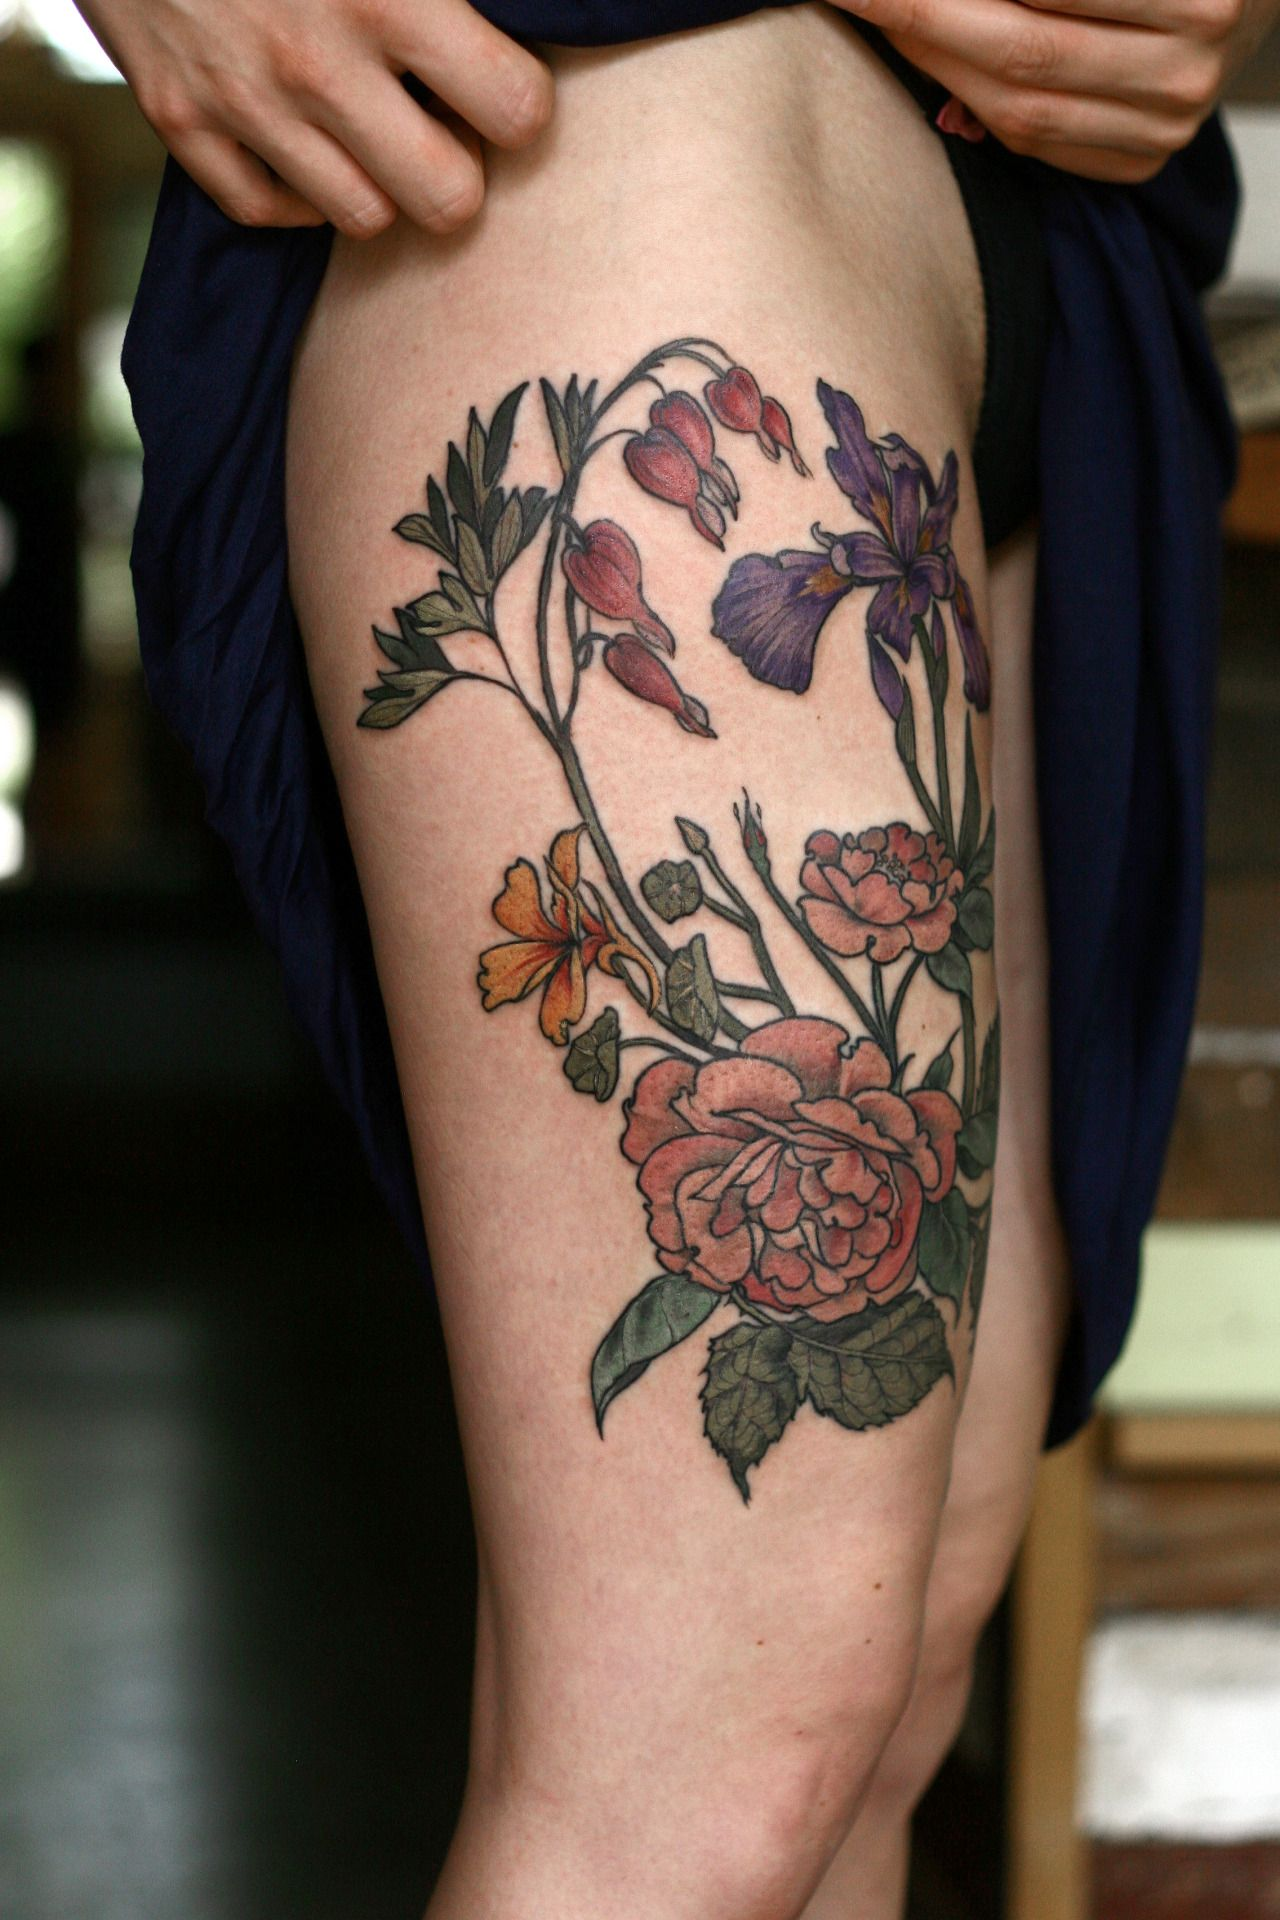 Wonderland Tattoos Alicecarrier Finished Up This Brambly Thigh